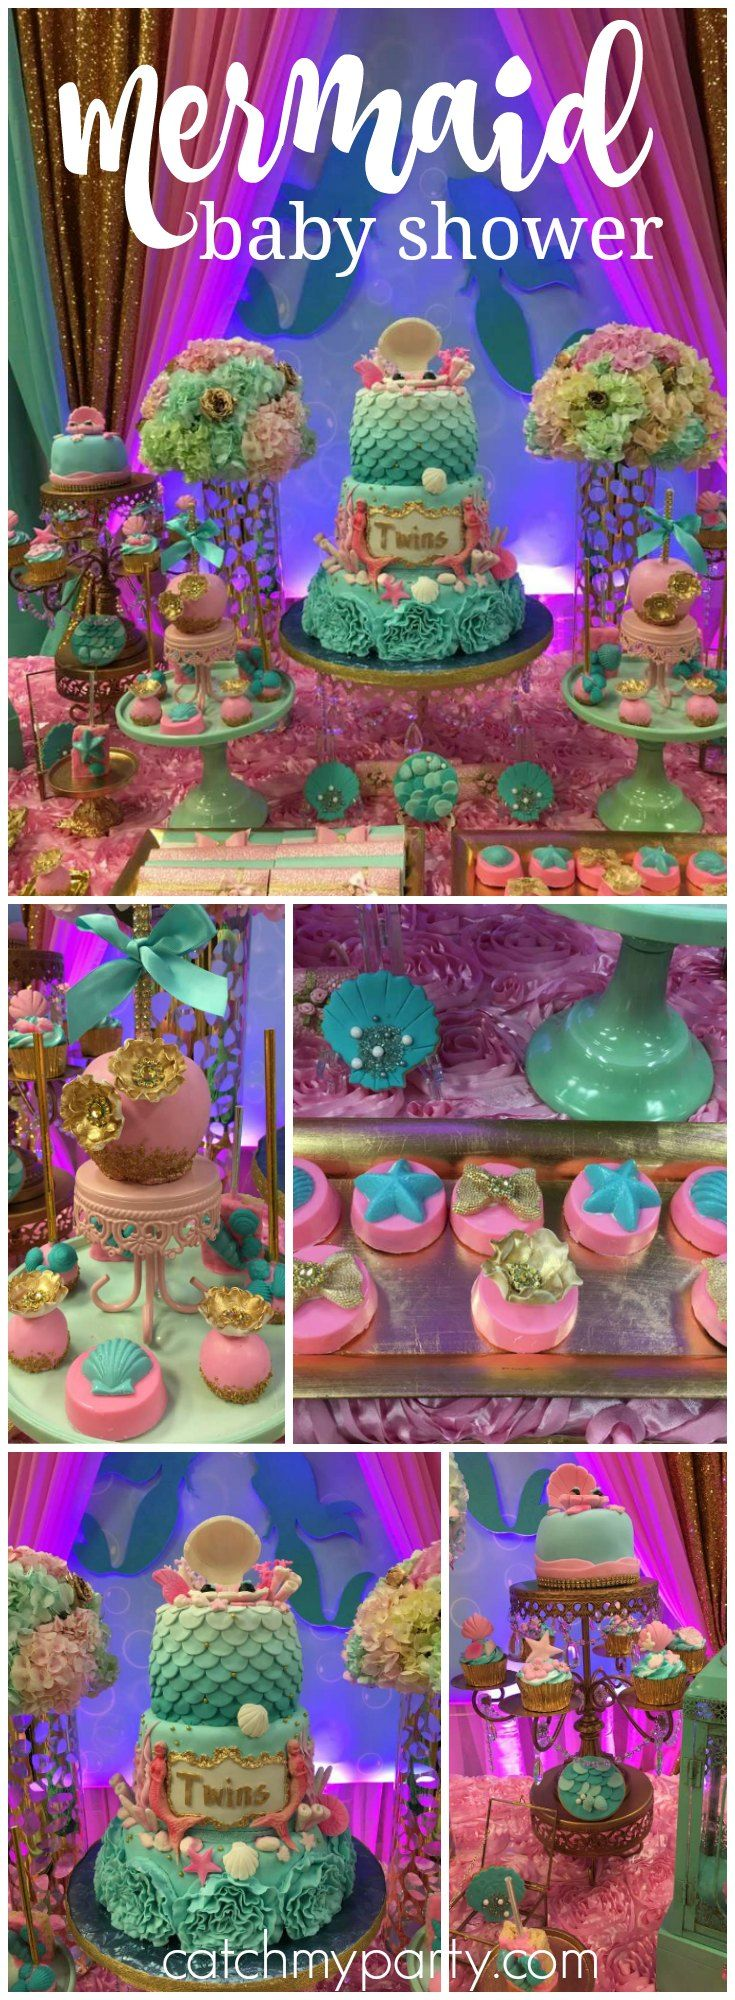 shower mermaid babyshower baby shower twins mermaid baby shower ideas